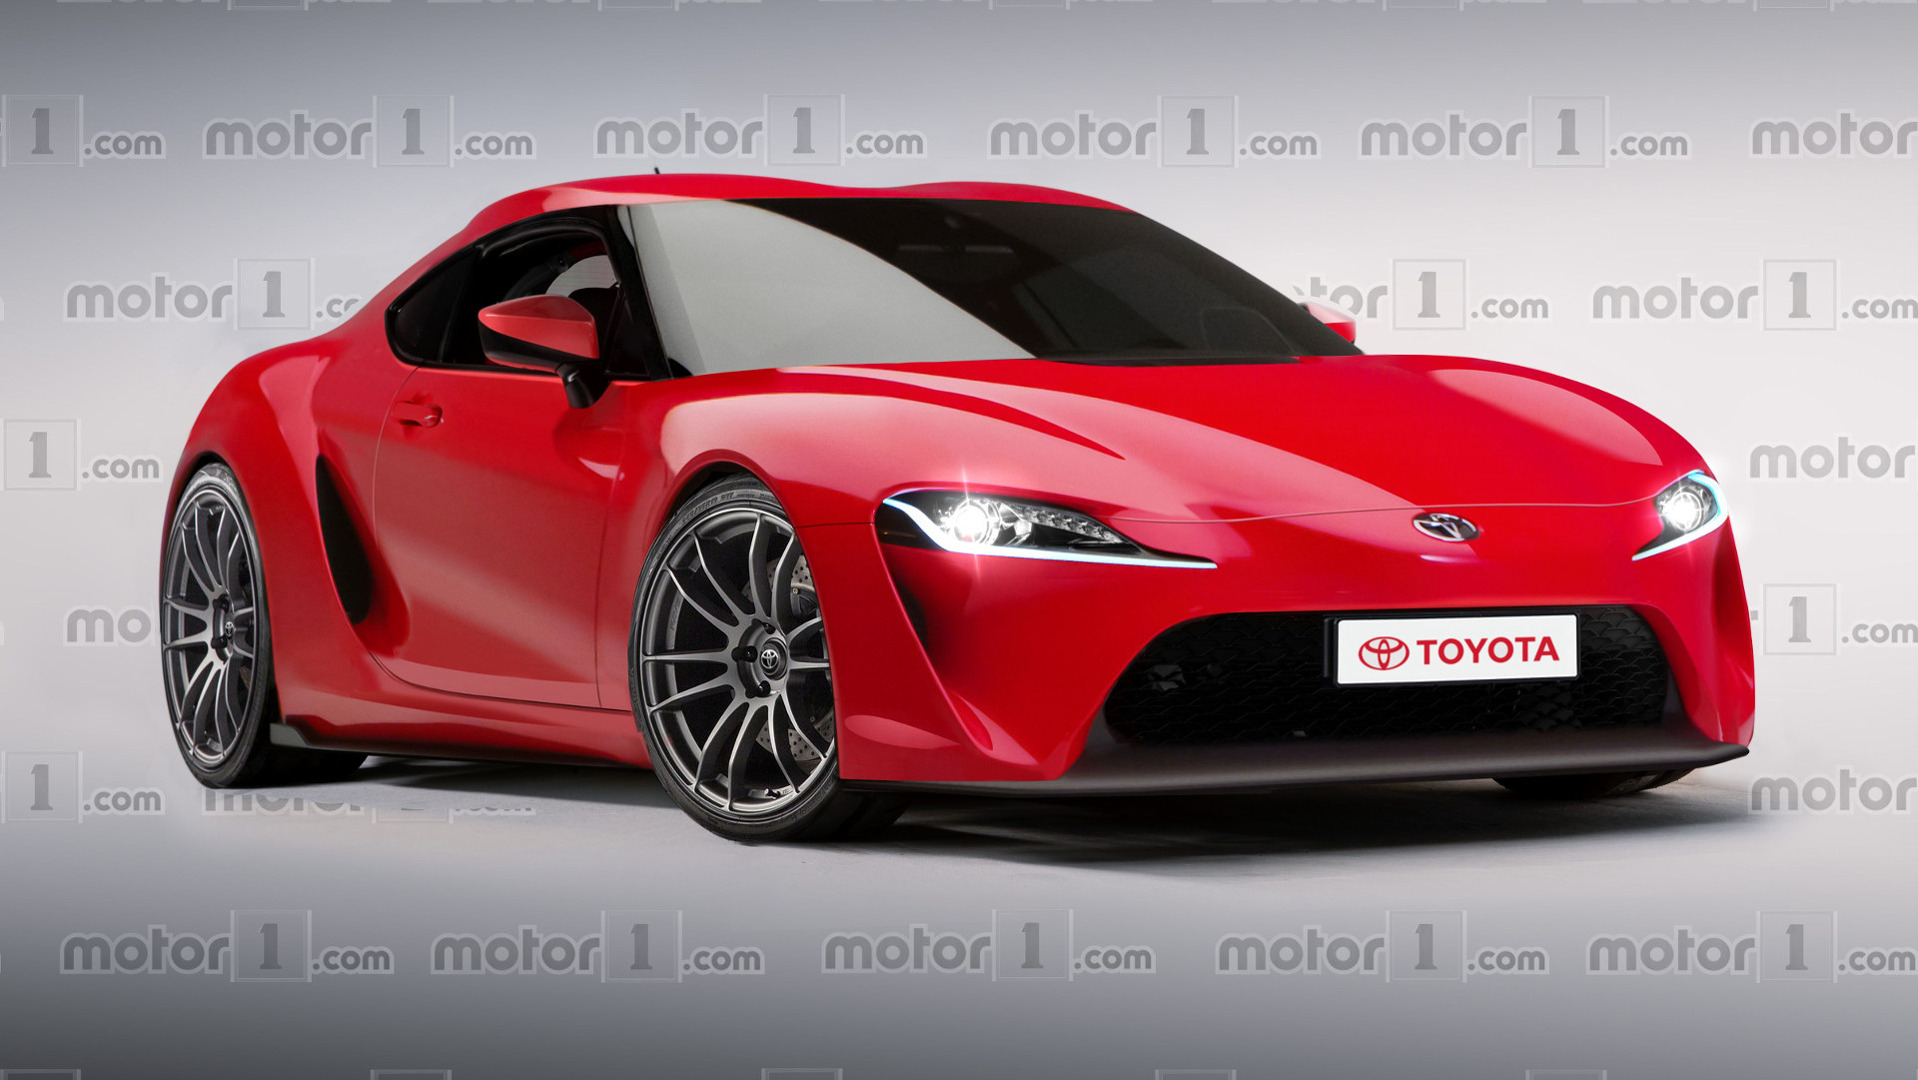 Much Hyped Toyota Supra Revival Digitally Imagined